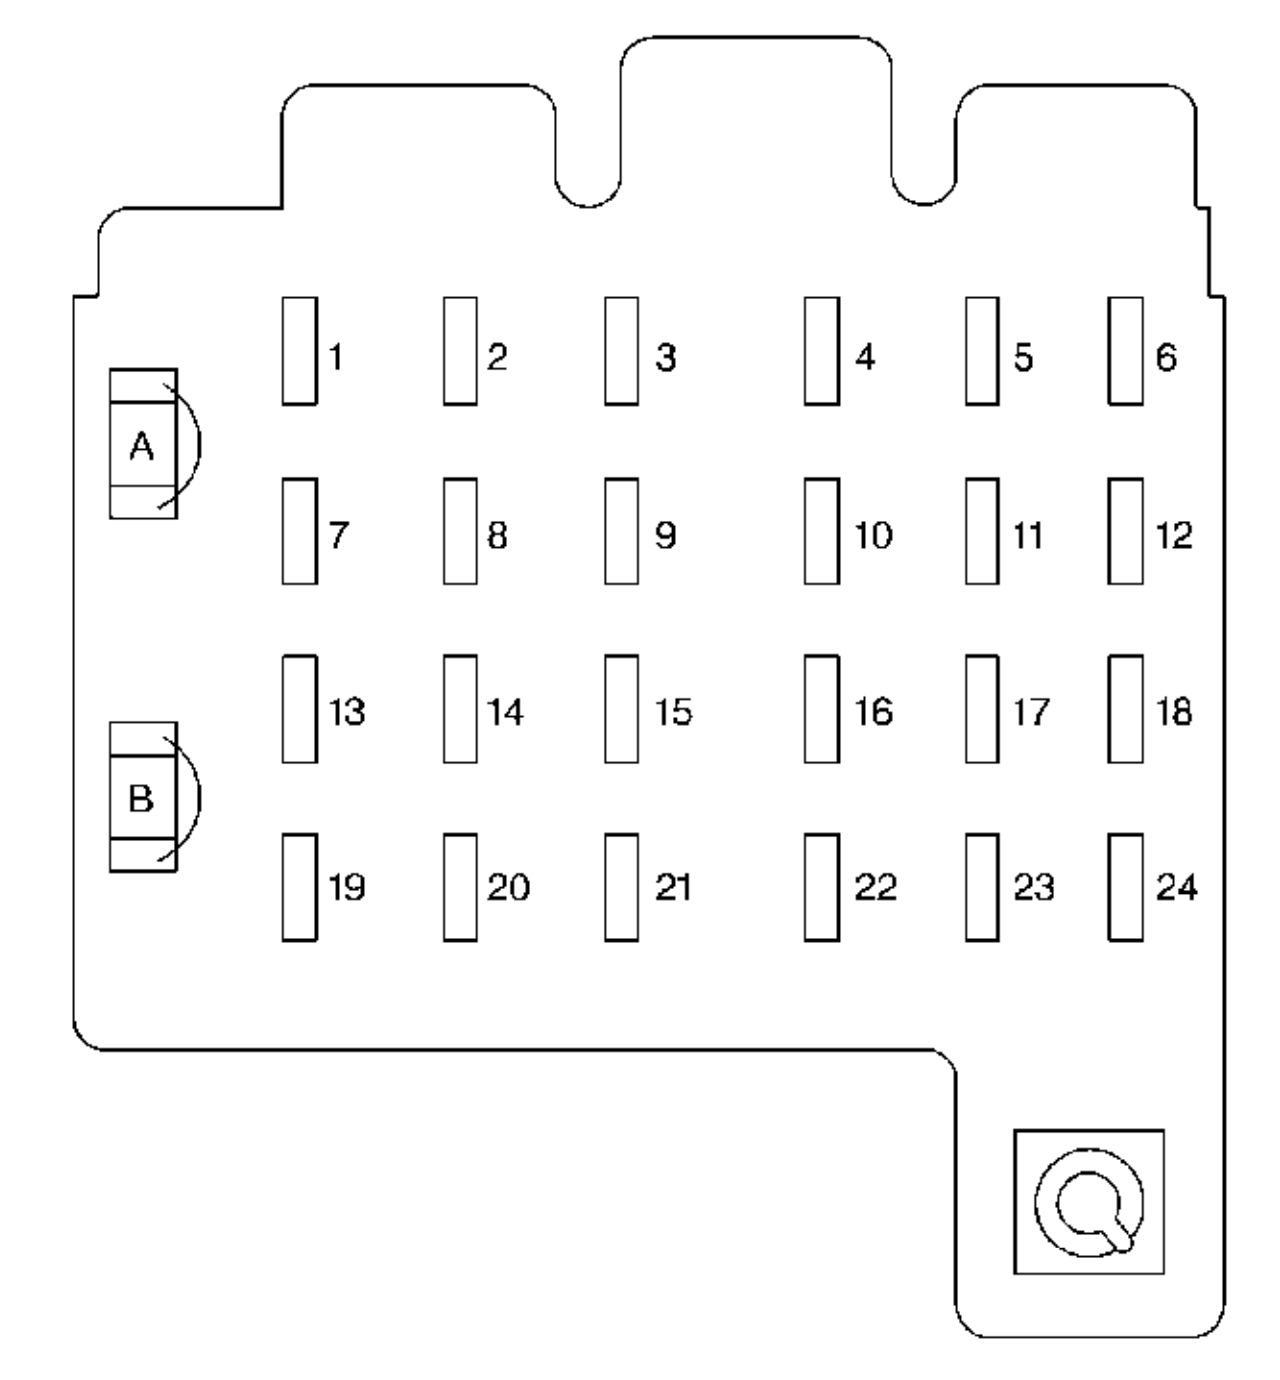 chevrolet suburban (1999) fuse box diagram auto genius fuse box diagram 1999 chevrolet metro chevrolet suburban (1999) fuse box diagram